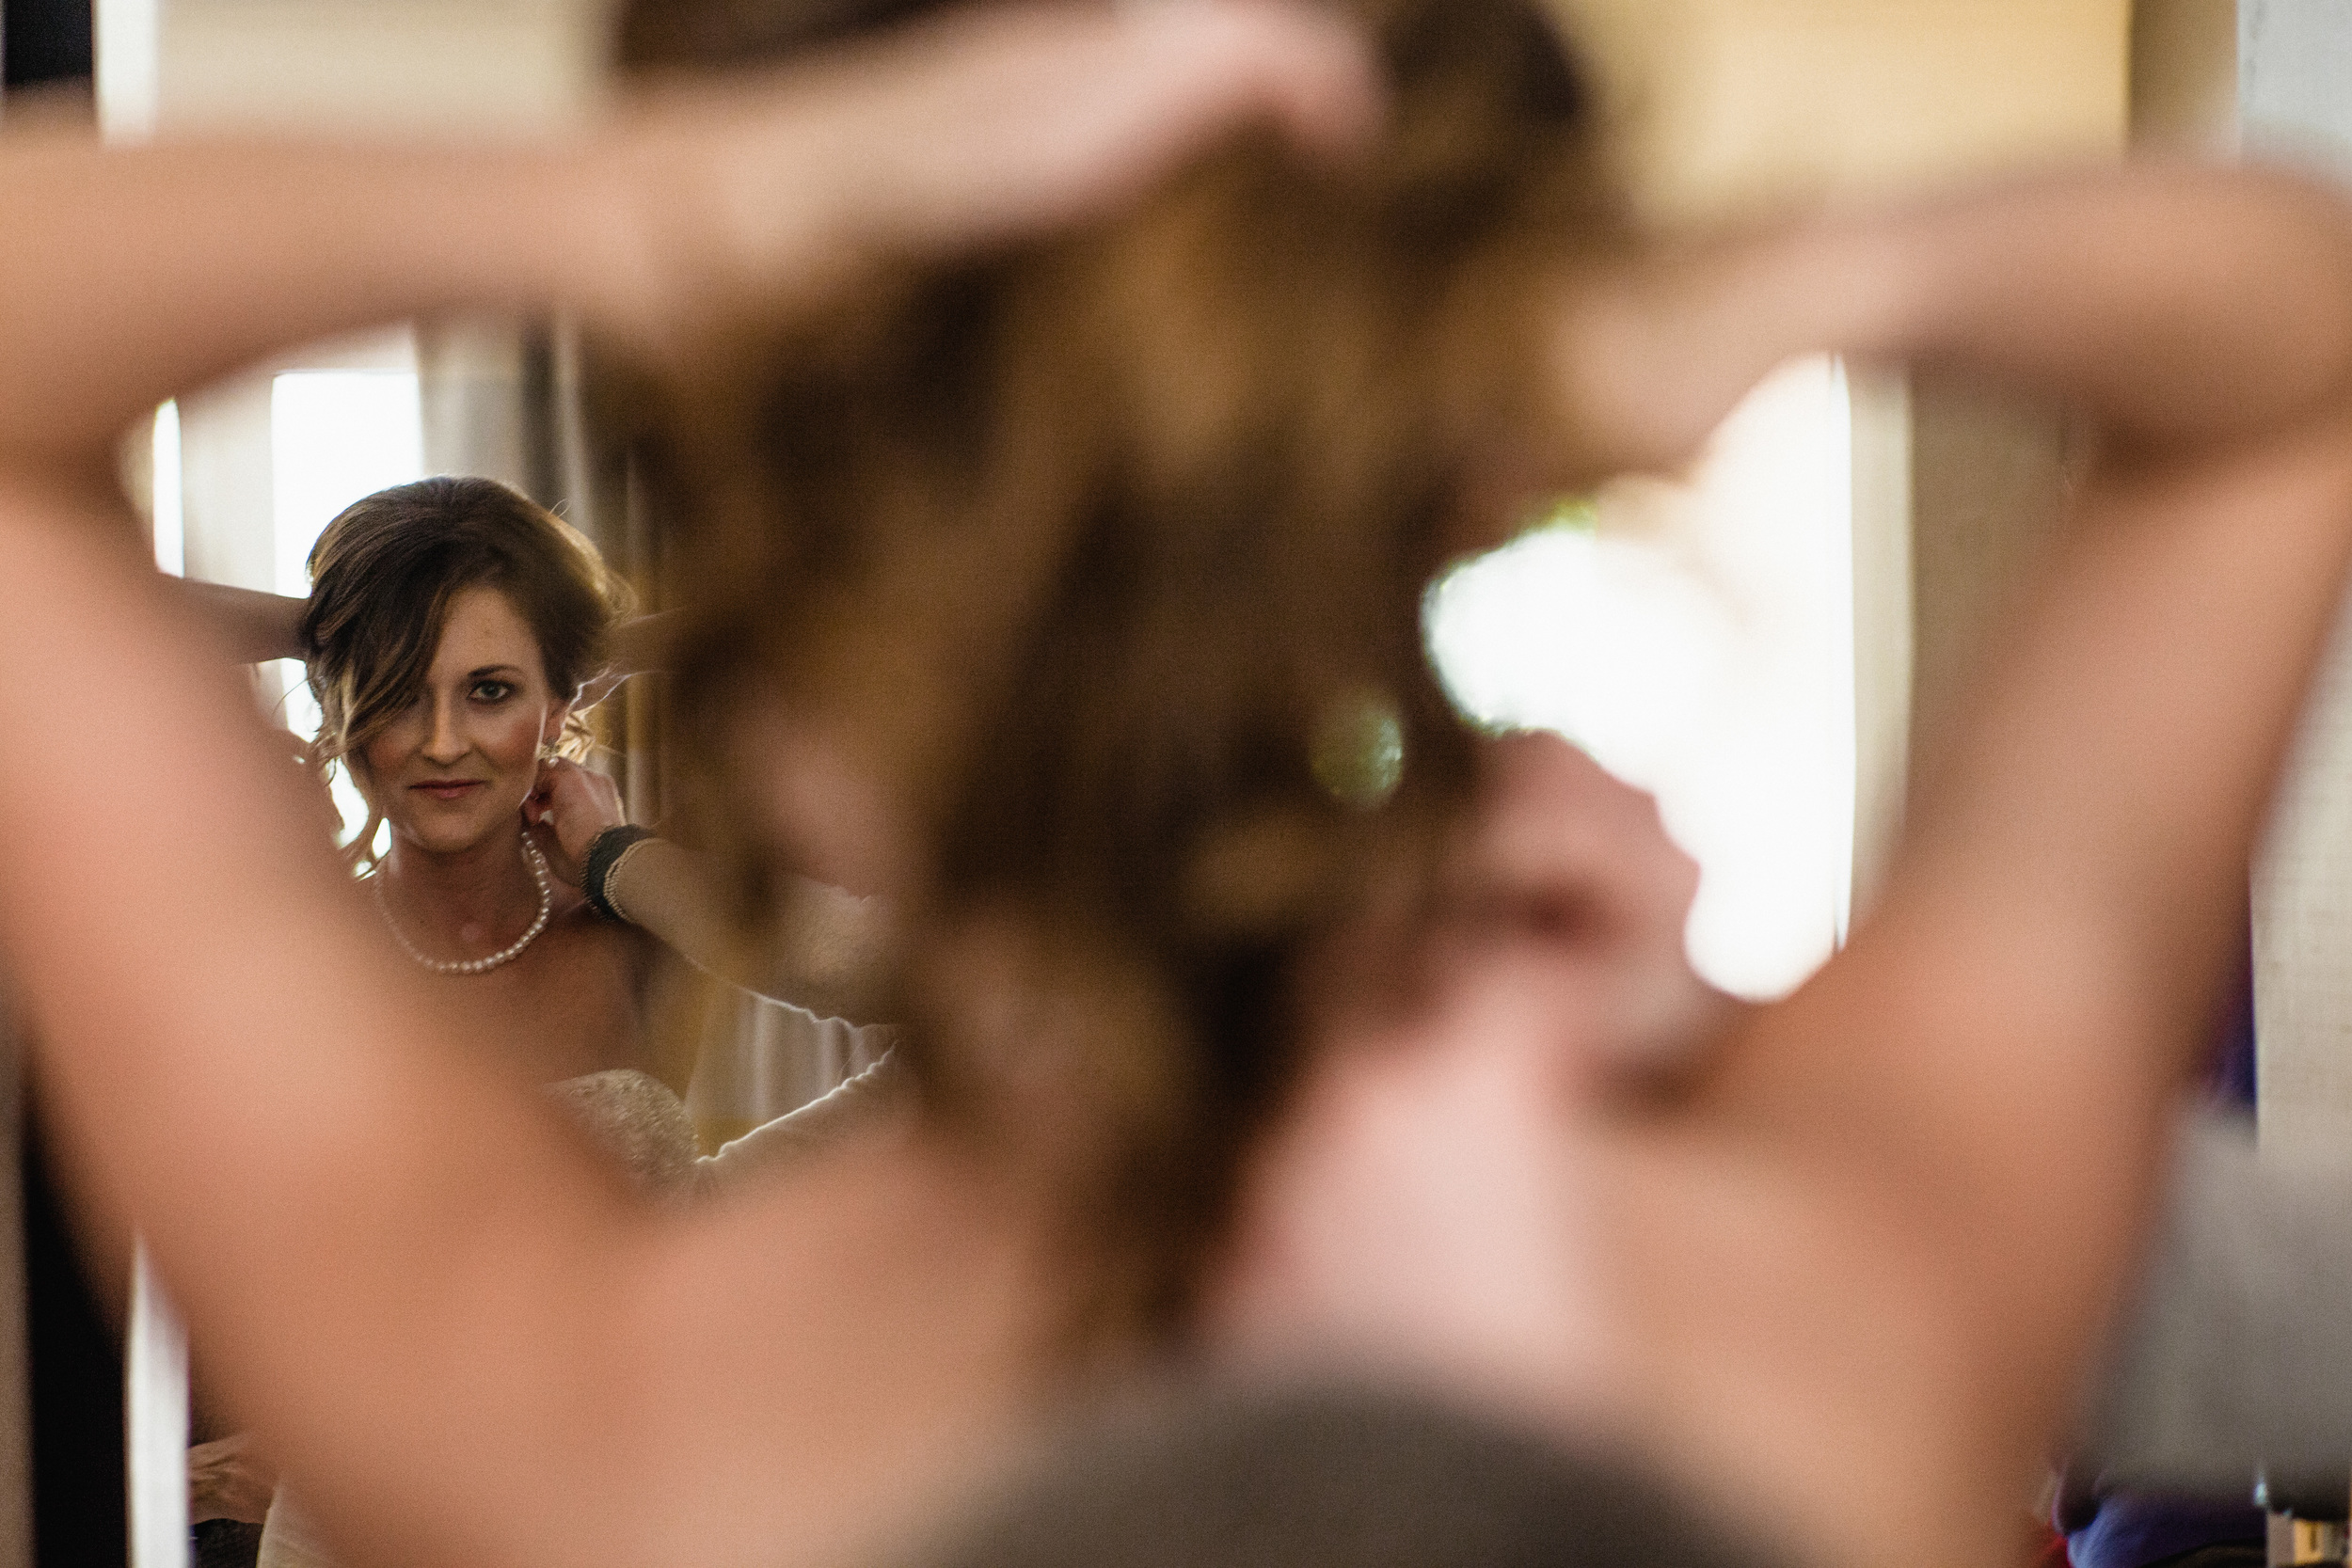 Wedding Photography. Bride gets ready with her bridesmaids in her hotel room before the wedding